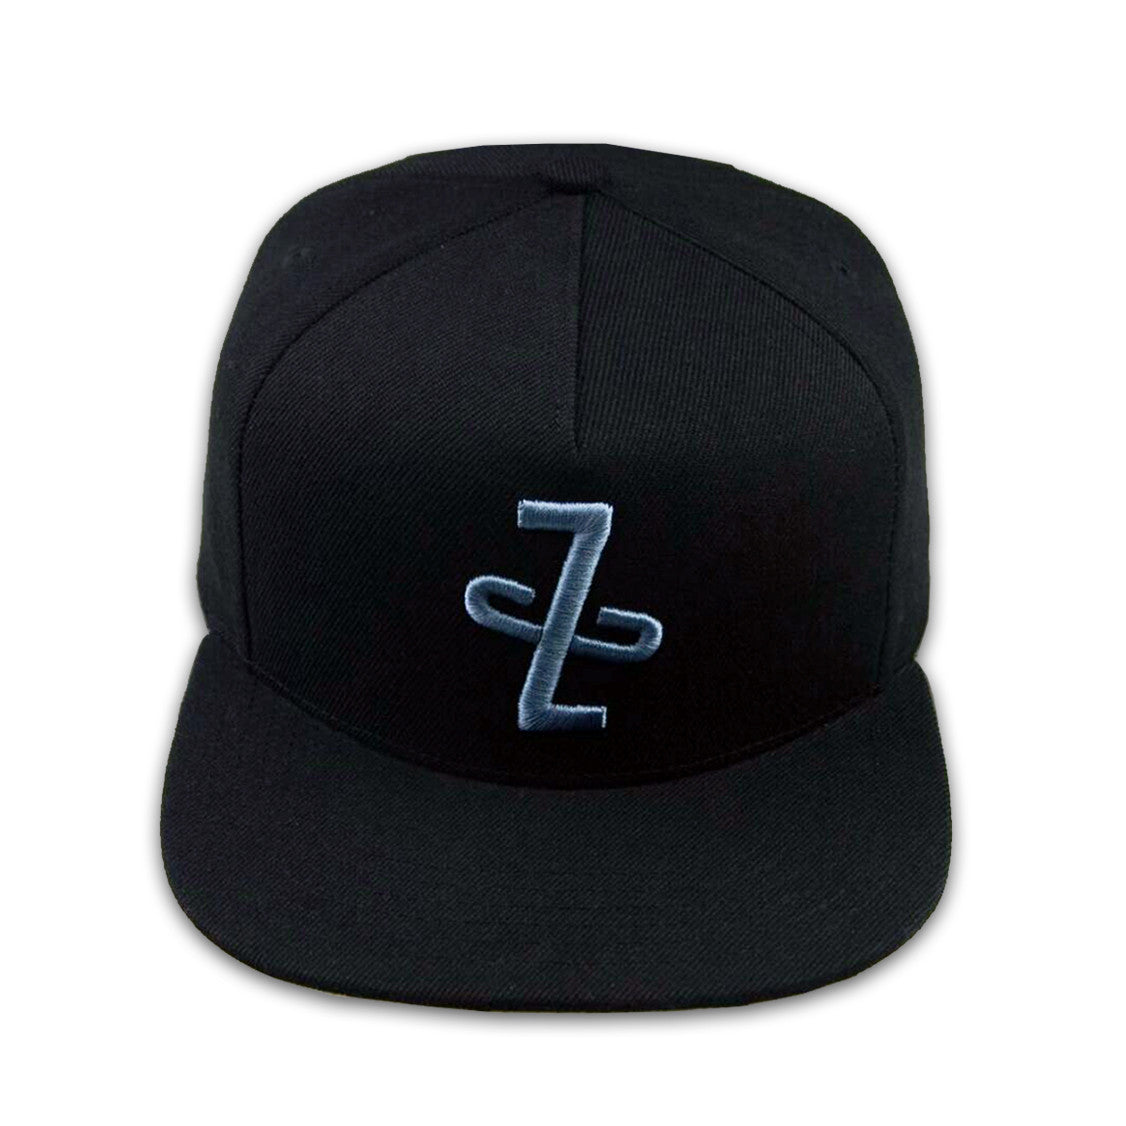 ZENCKA SYMBOL (BLACK) - ZENCKA CONNECTION